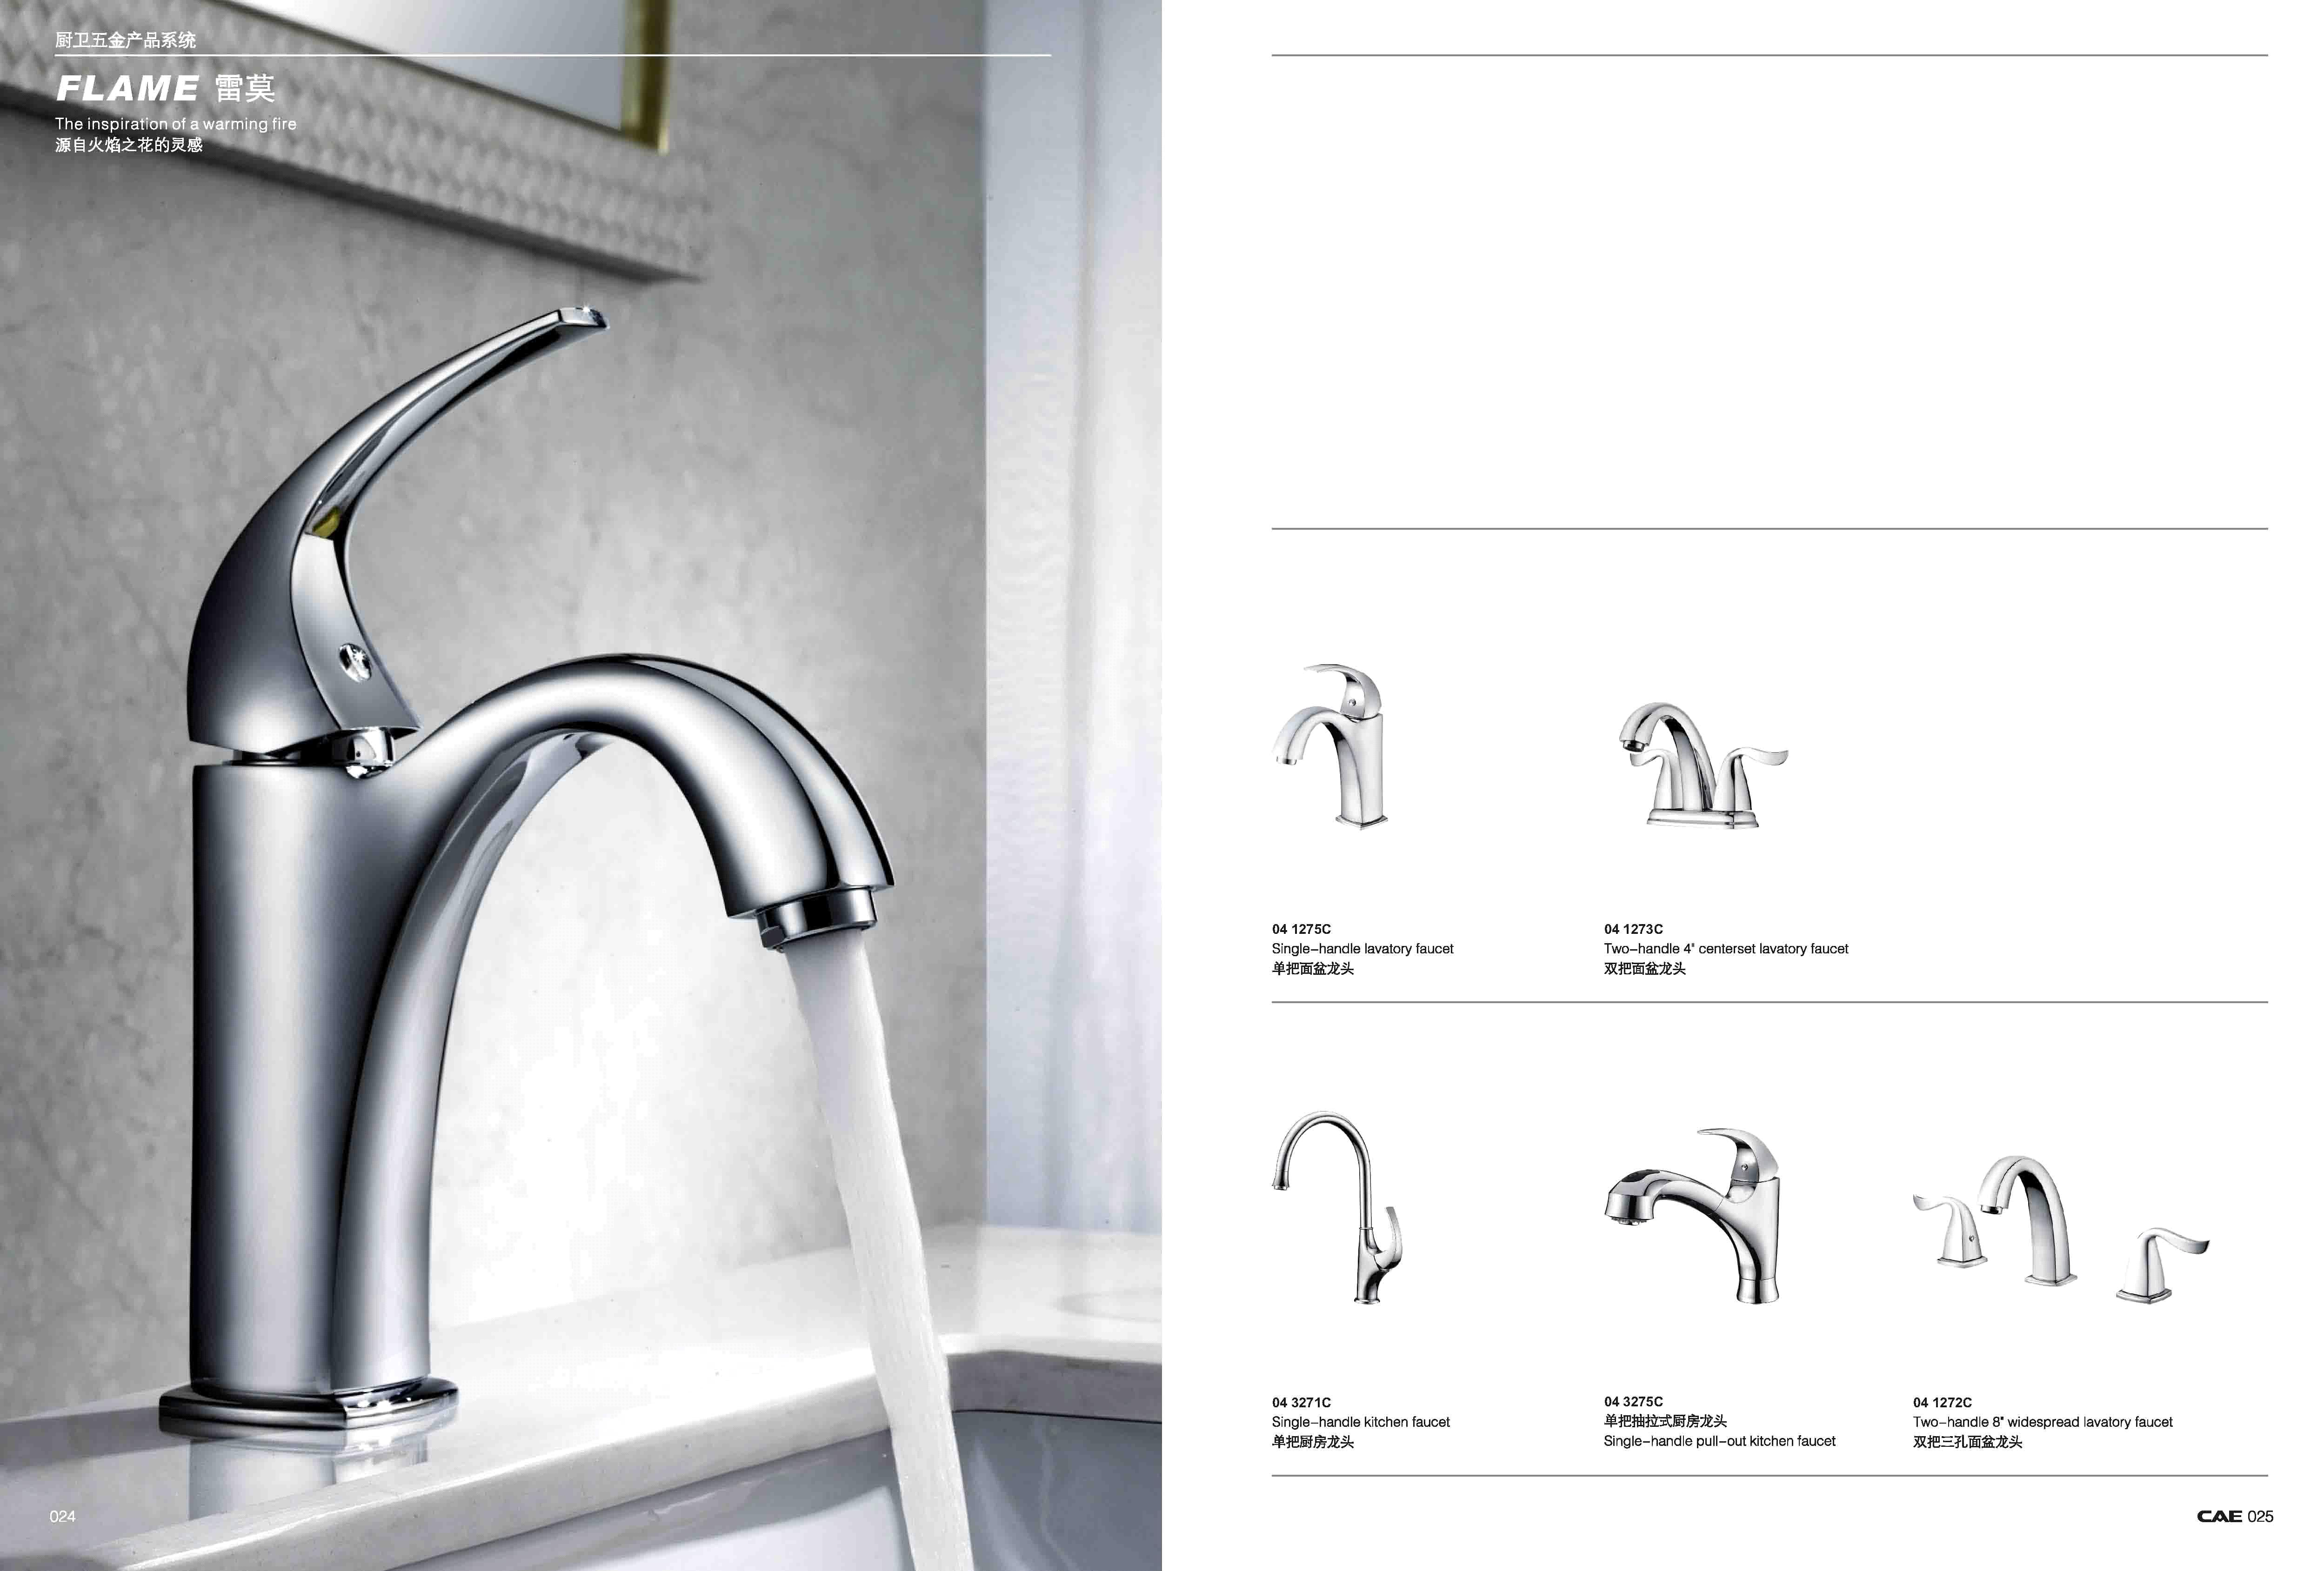 Manufacturer Factory Faucets Flame Faucet From China Manufacturer Manufactory Factory